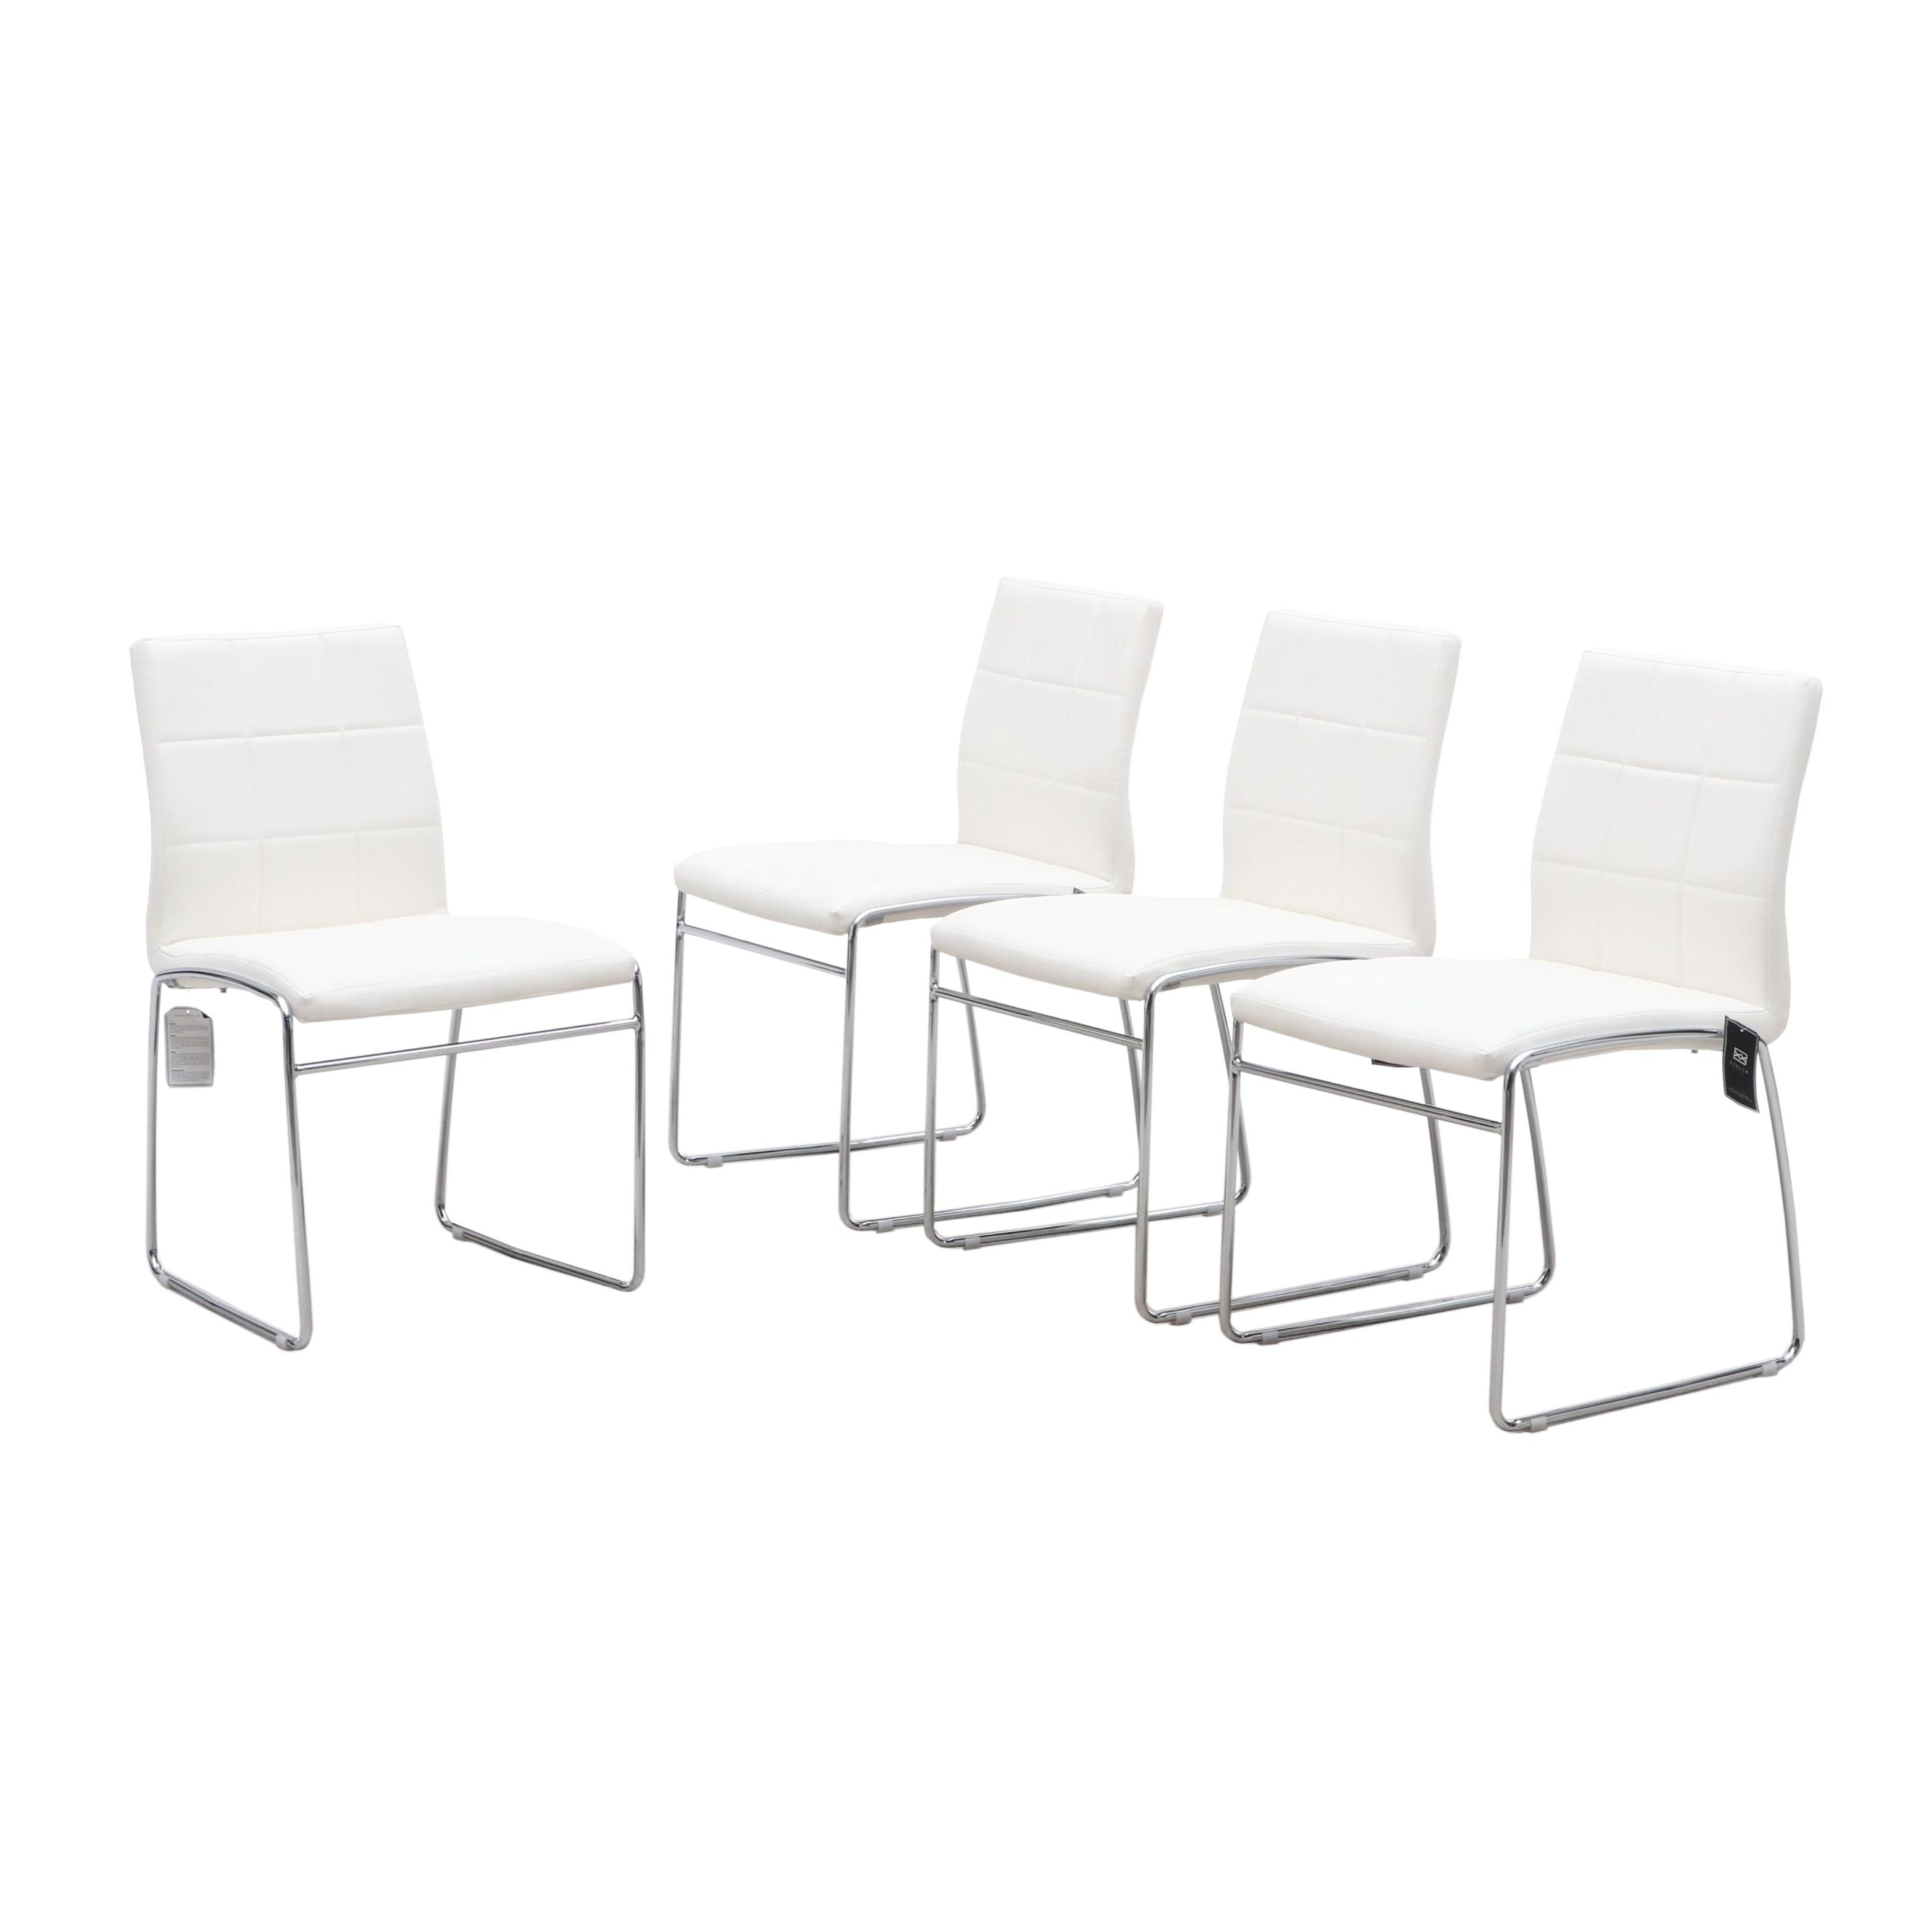 Excella Furniture Leather and Chrome Side Chairs in White